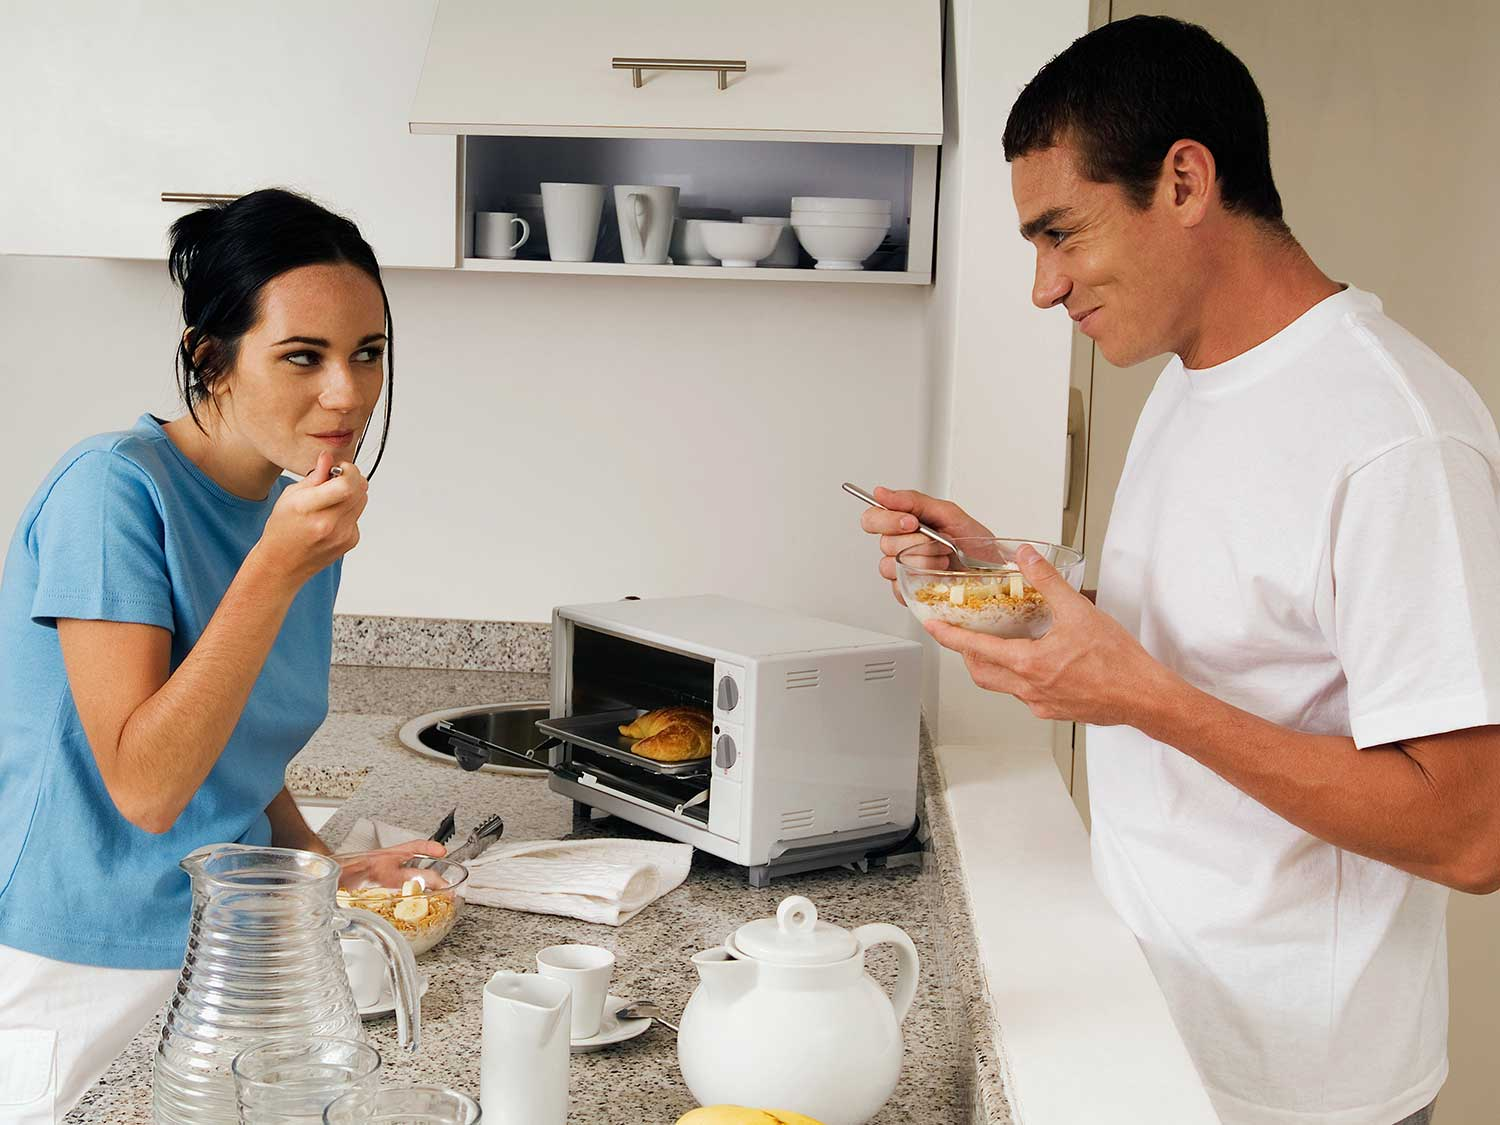 Couple eating breakfast by toaster oven in kitchen.